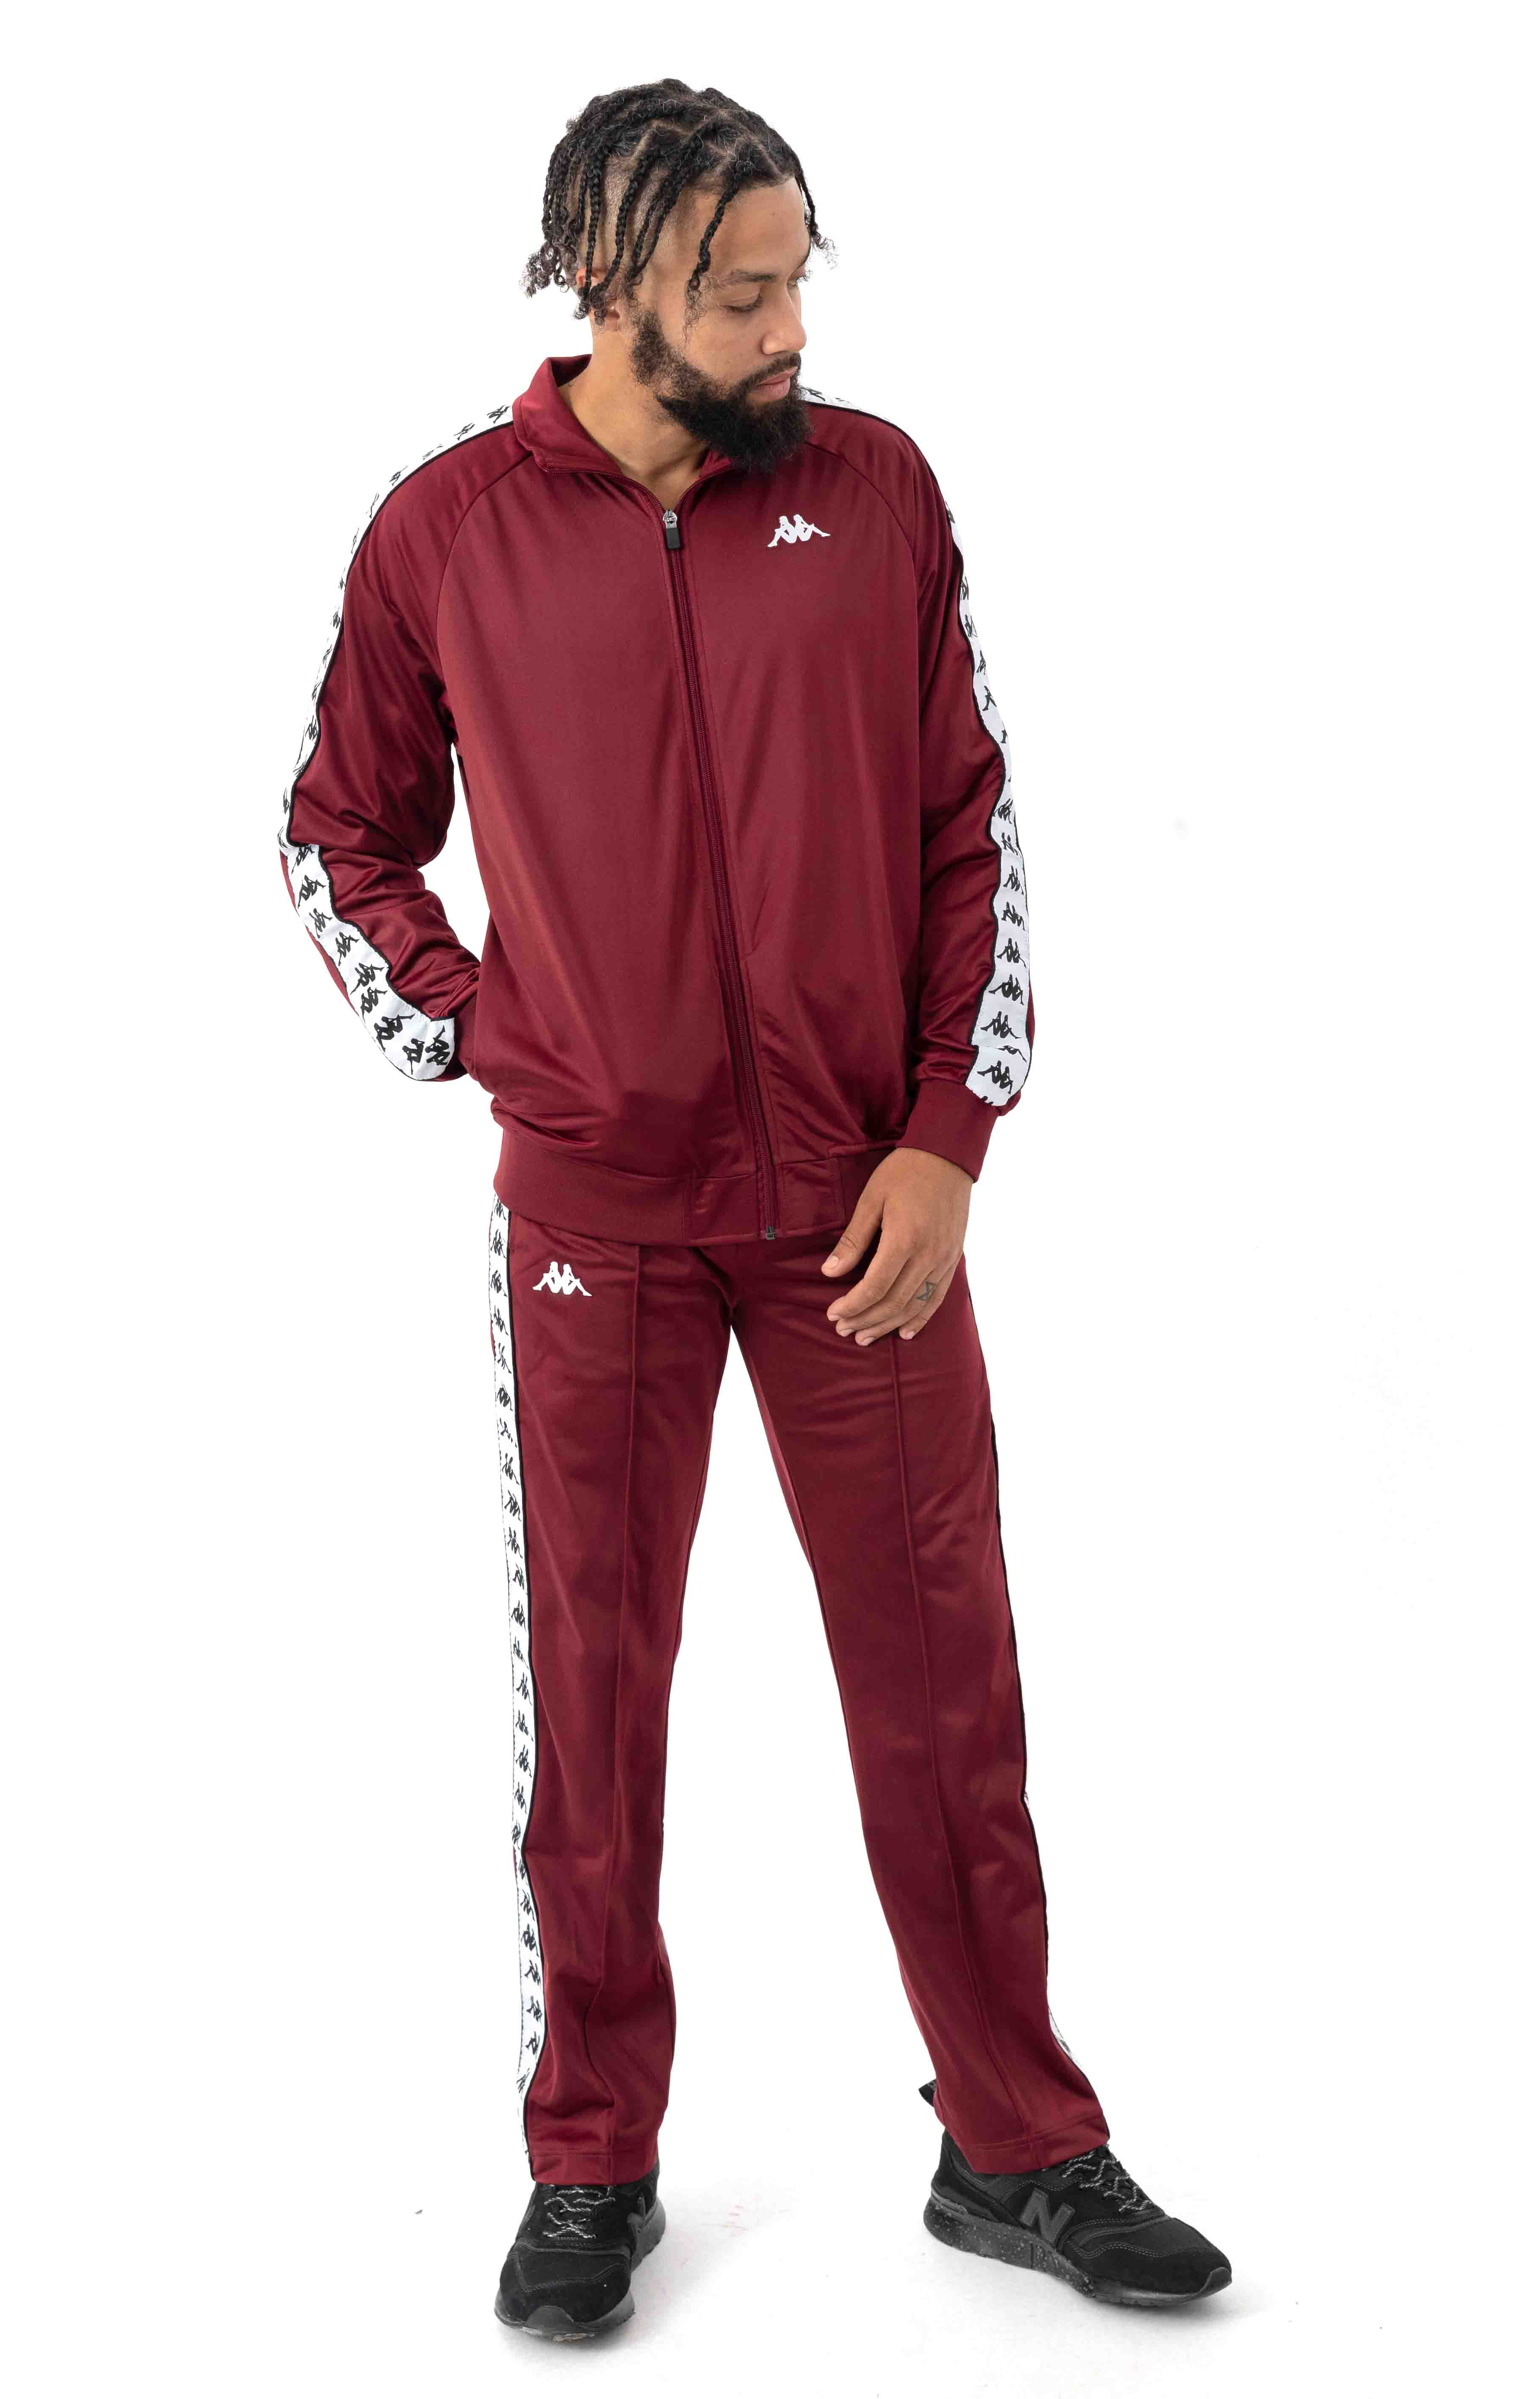 222 Banda Astoriazz Trackpant - Red Dahlia/White 4